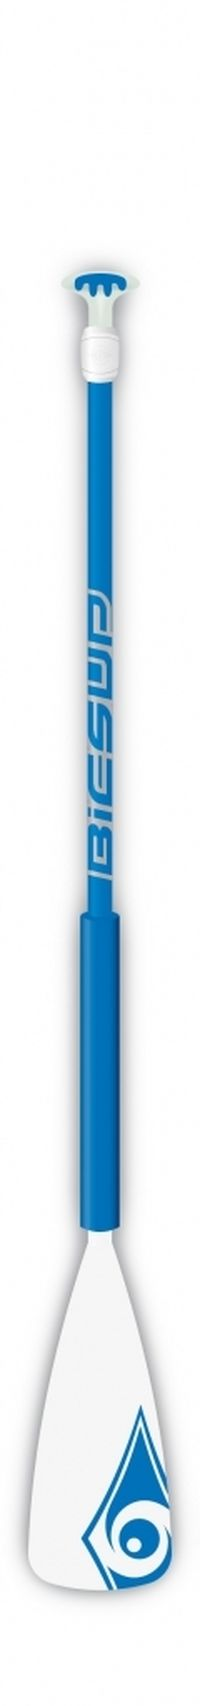 SUP Original Adult Paddle